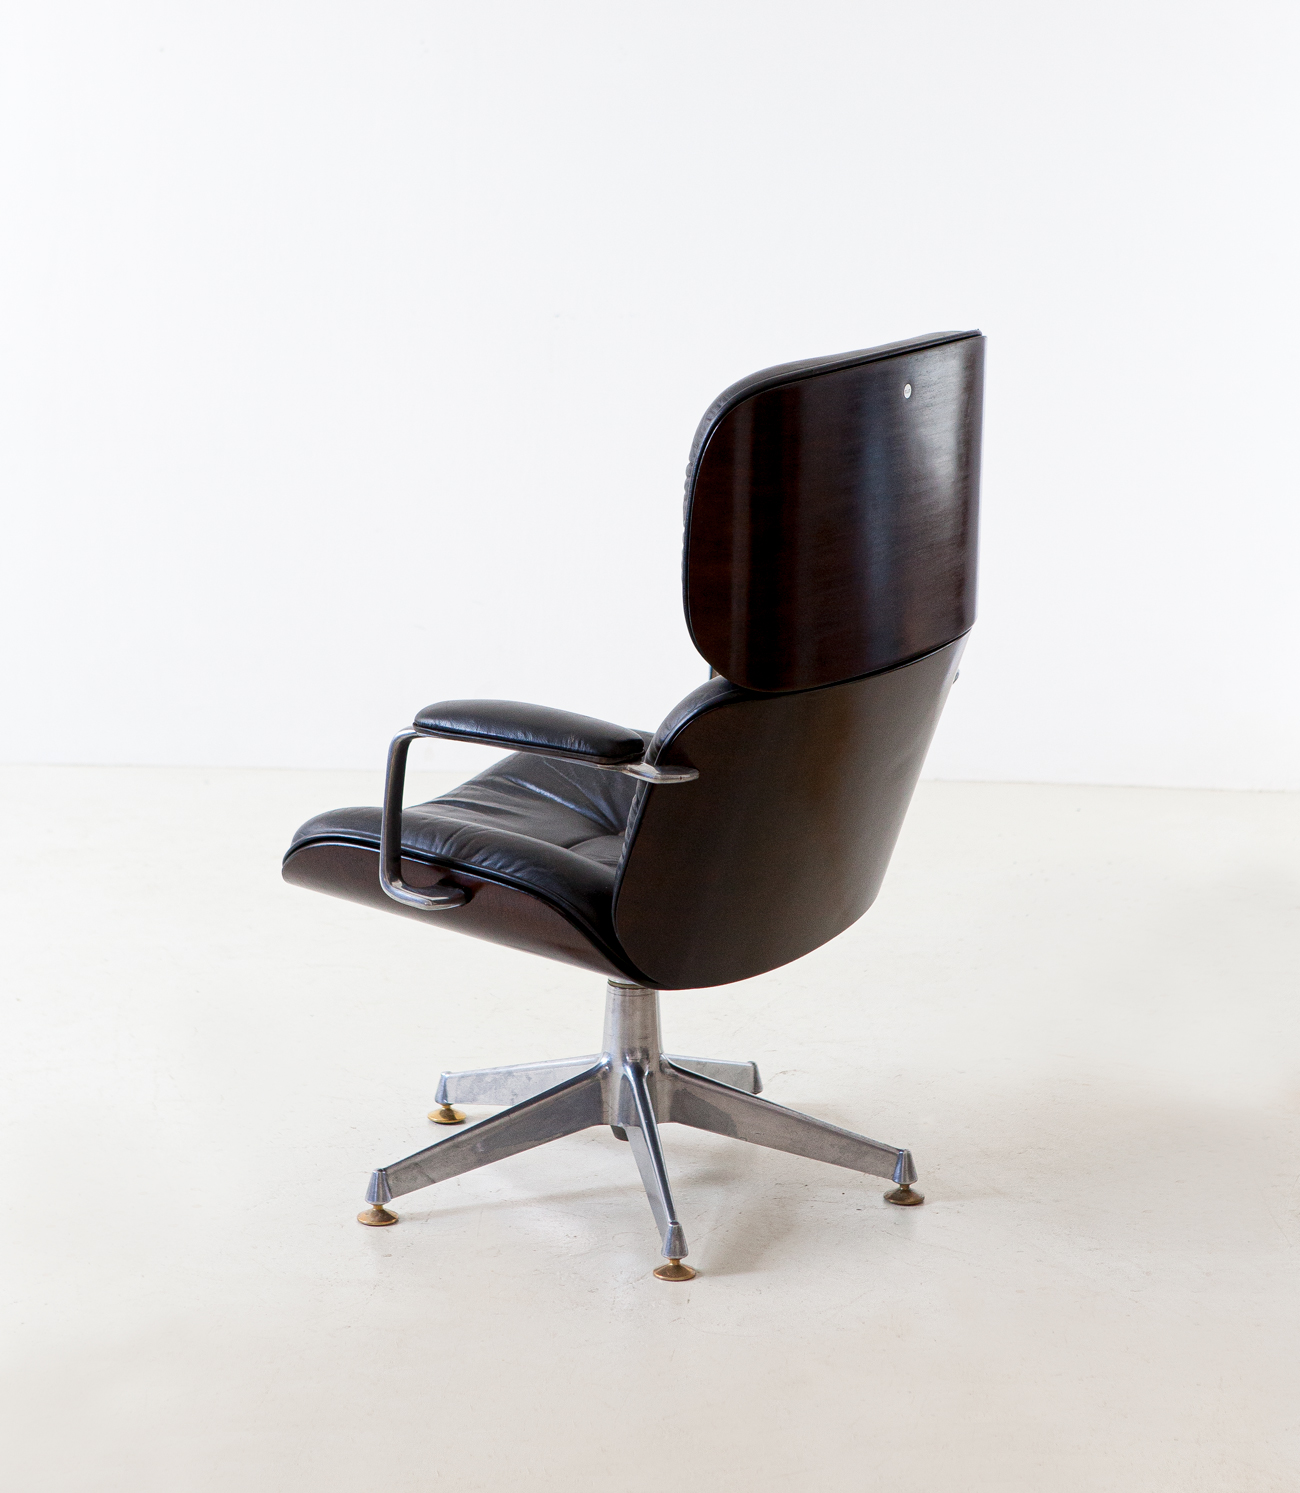 1950s-executive-desk-chair-by-Ico-Parisi-for-M.i.M.-12-SE332